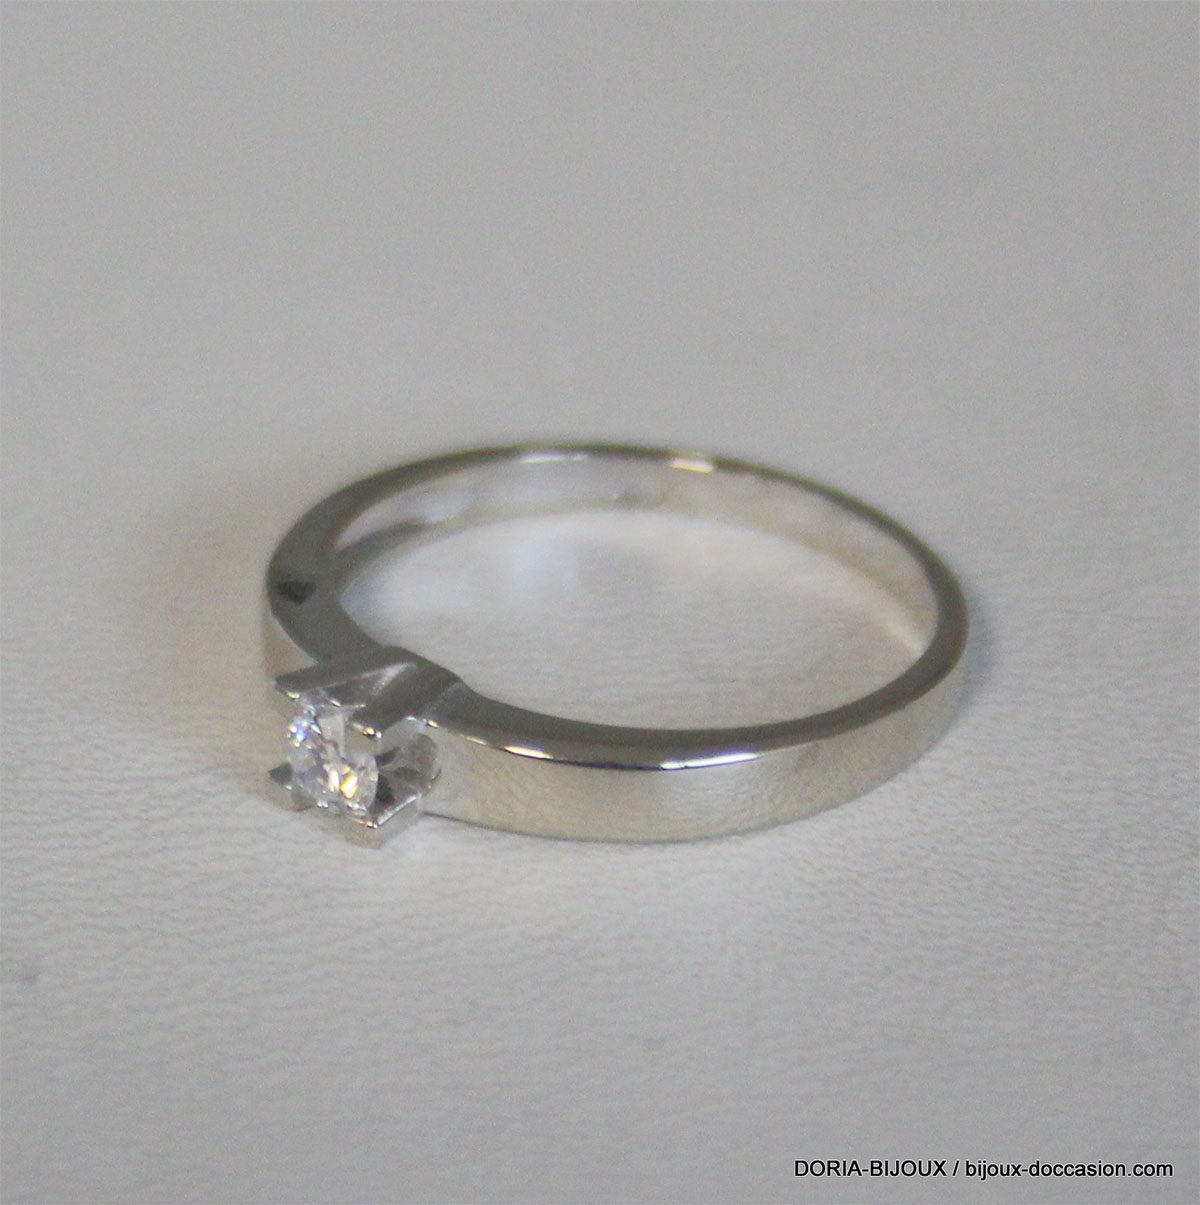 Bague Solitaire Or 750 Diamant 0.13cts 2.4grs -54